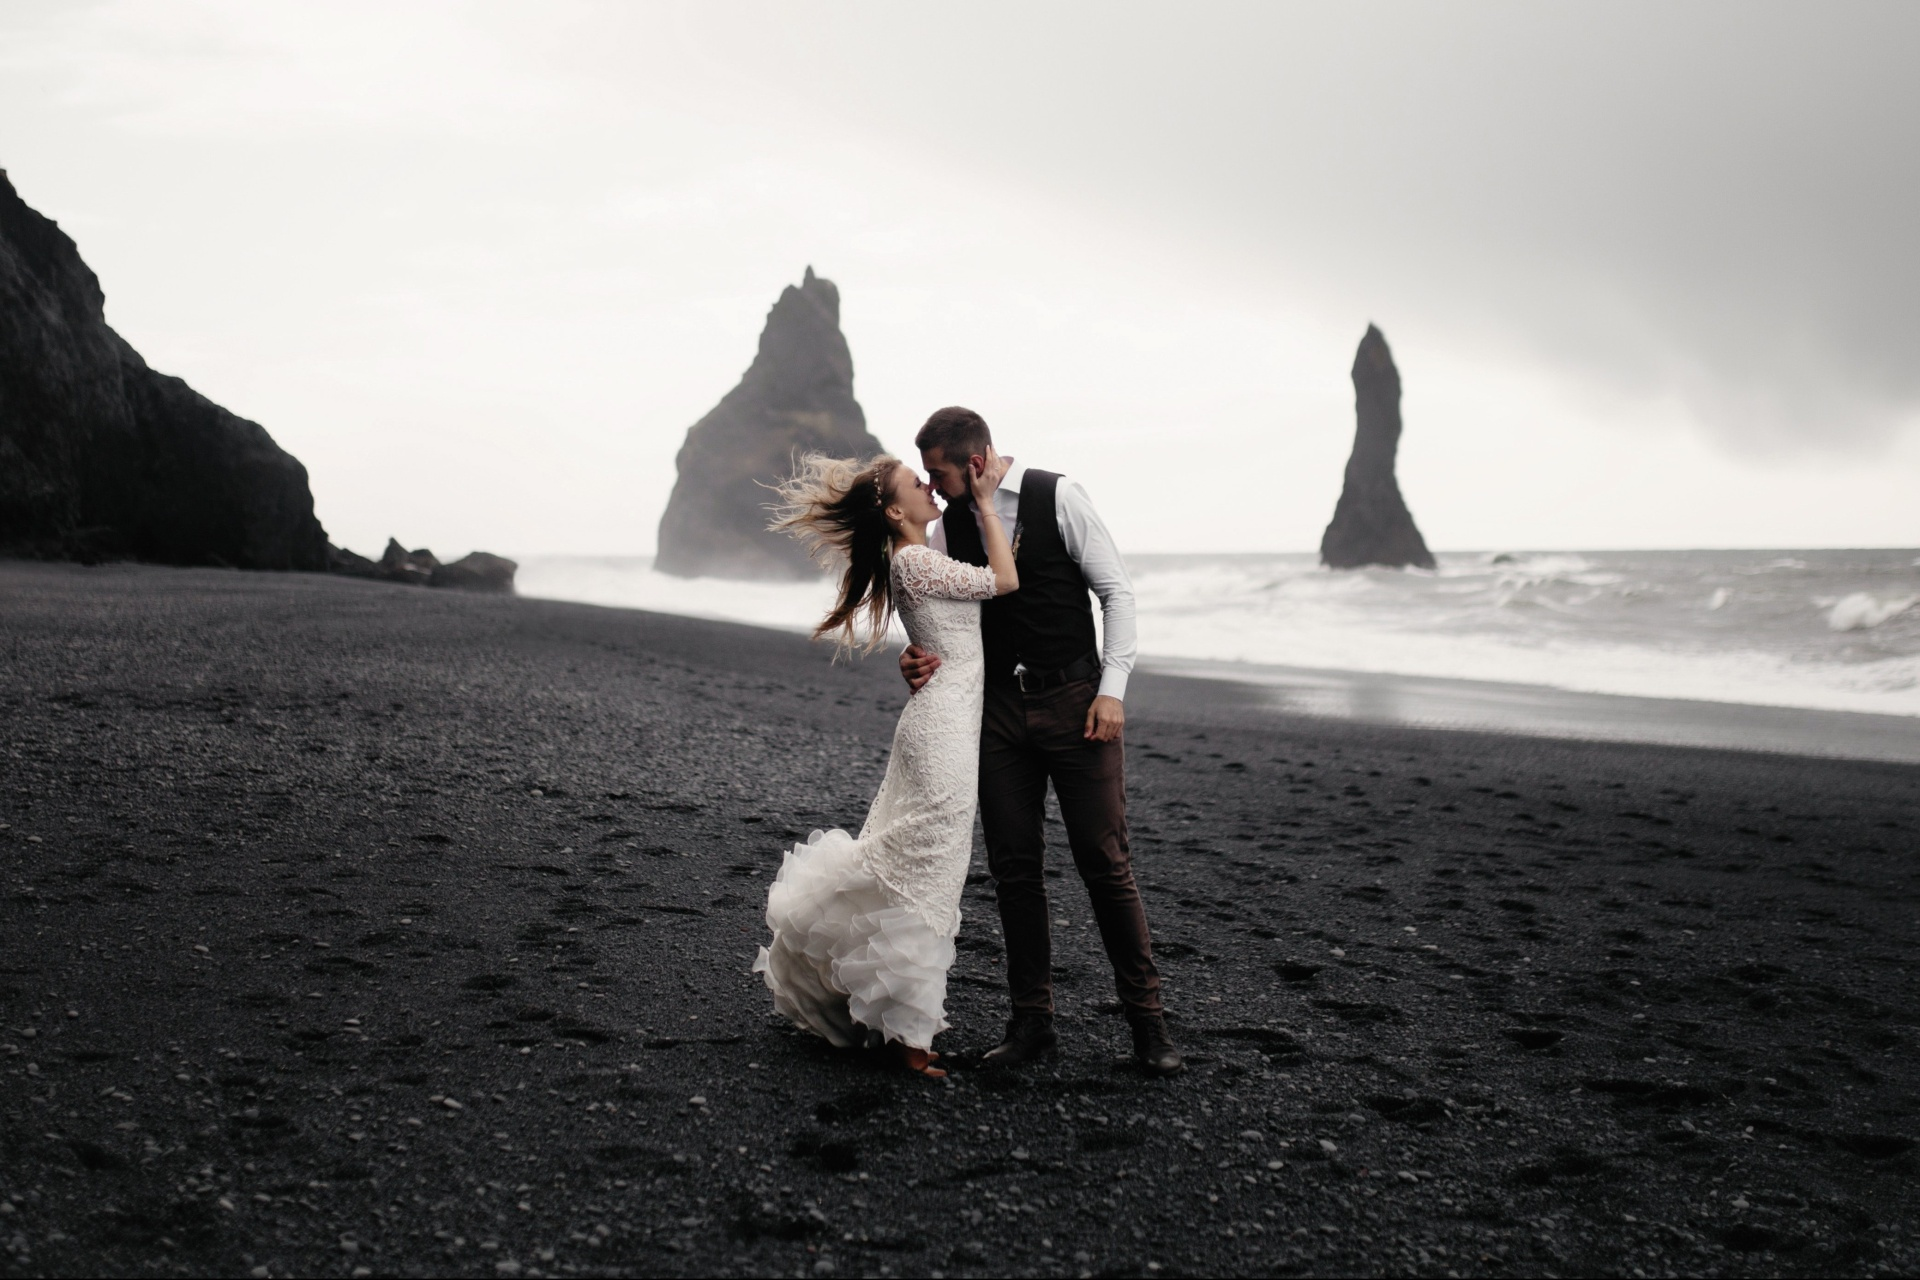 What Your Dream Wedding Will Look Like Once You Find Your Groom, Based On Your Zodiac Sign